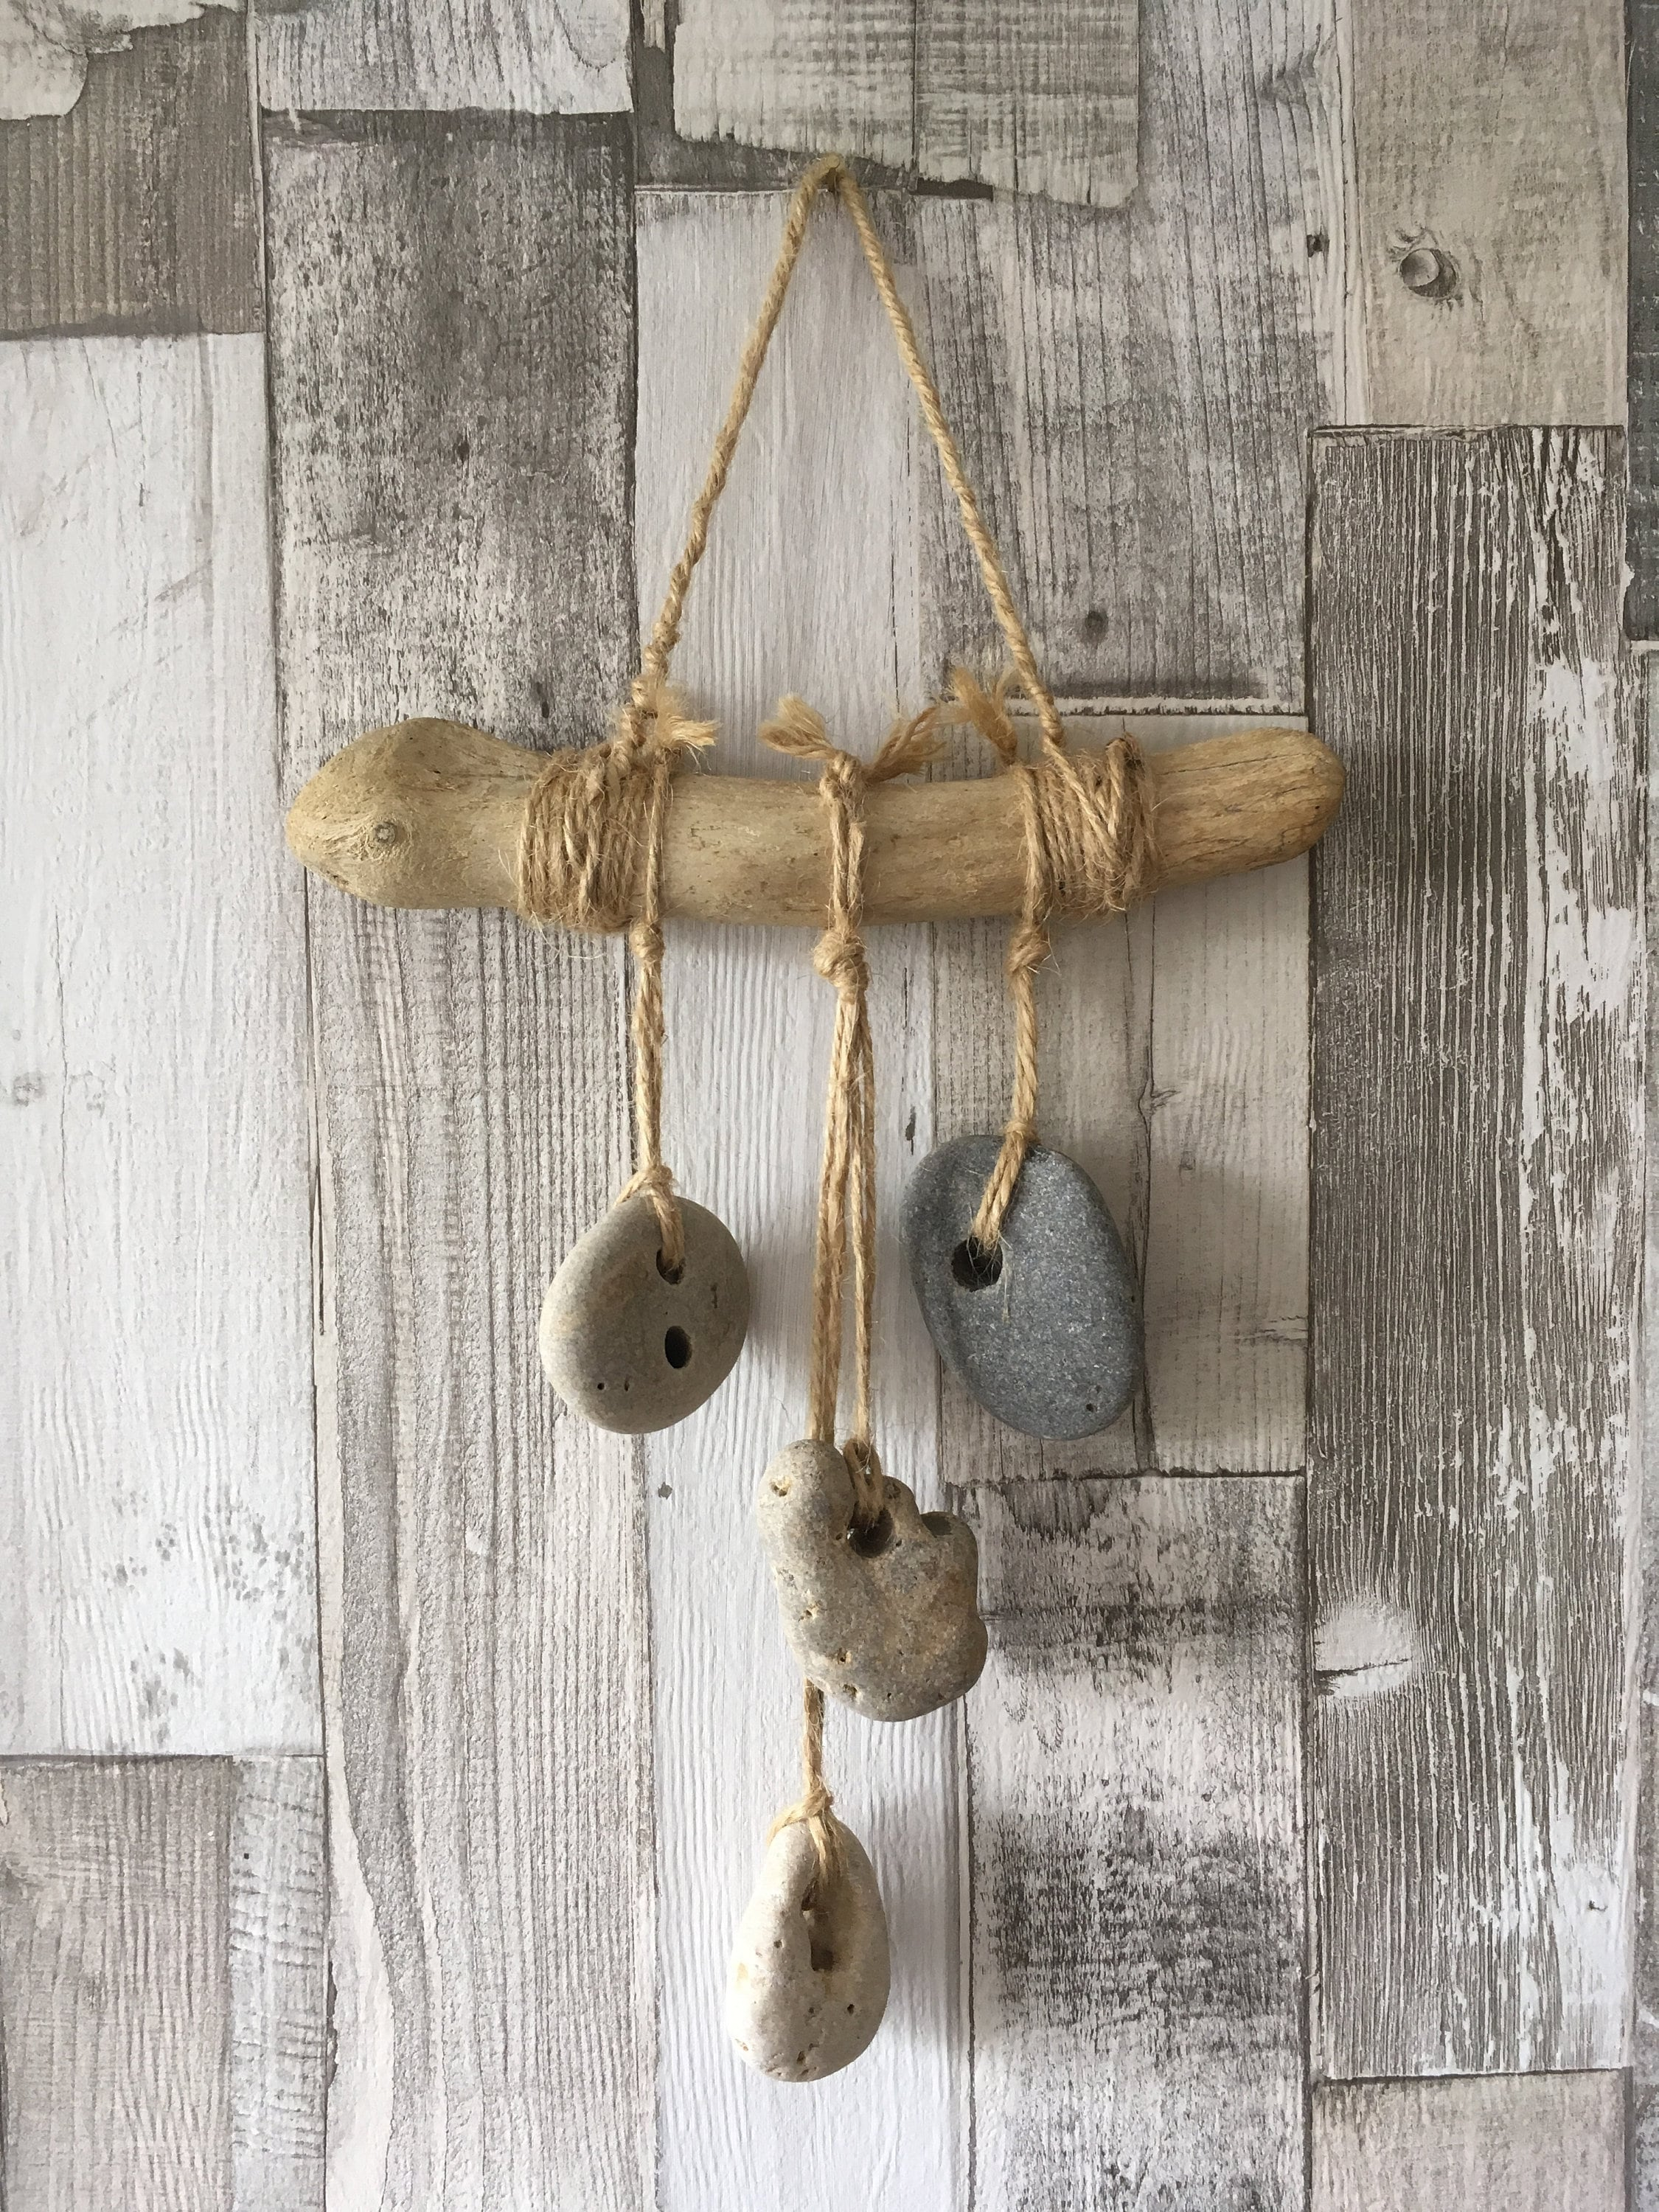 Hag Stone Lucky Stones Hanging Decoration Driftwood Beach Decor